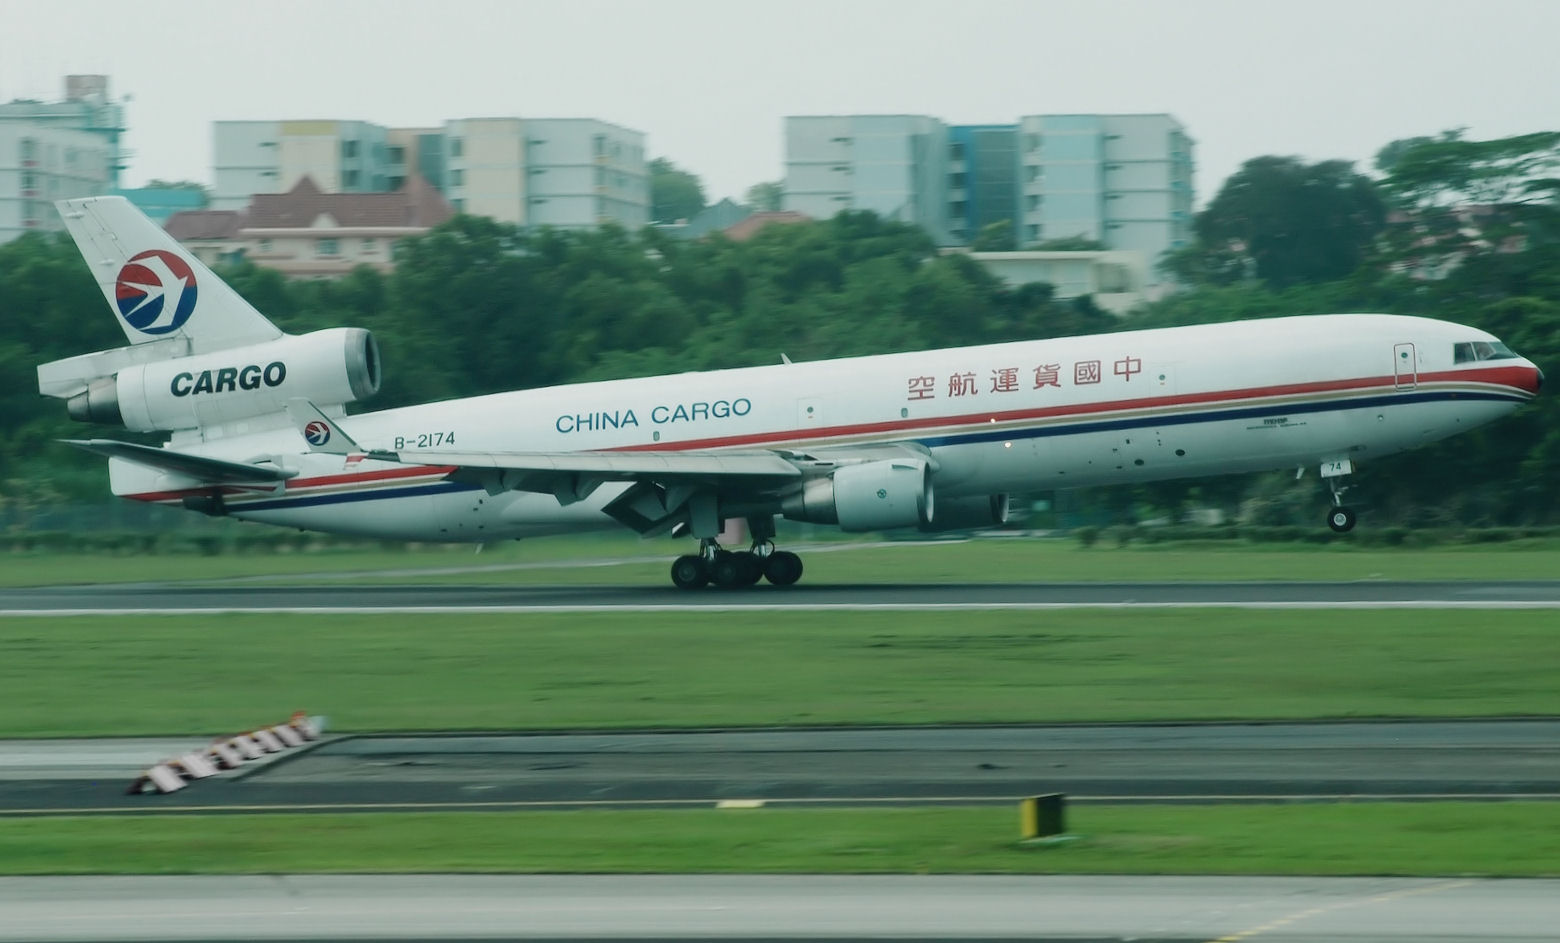 File:China Cargo Airlines, Boeing MD11F, B-2174, SIN.jpg